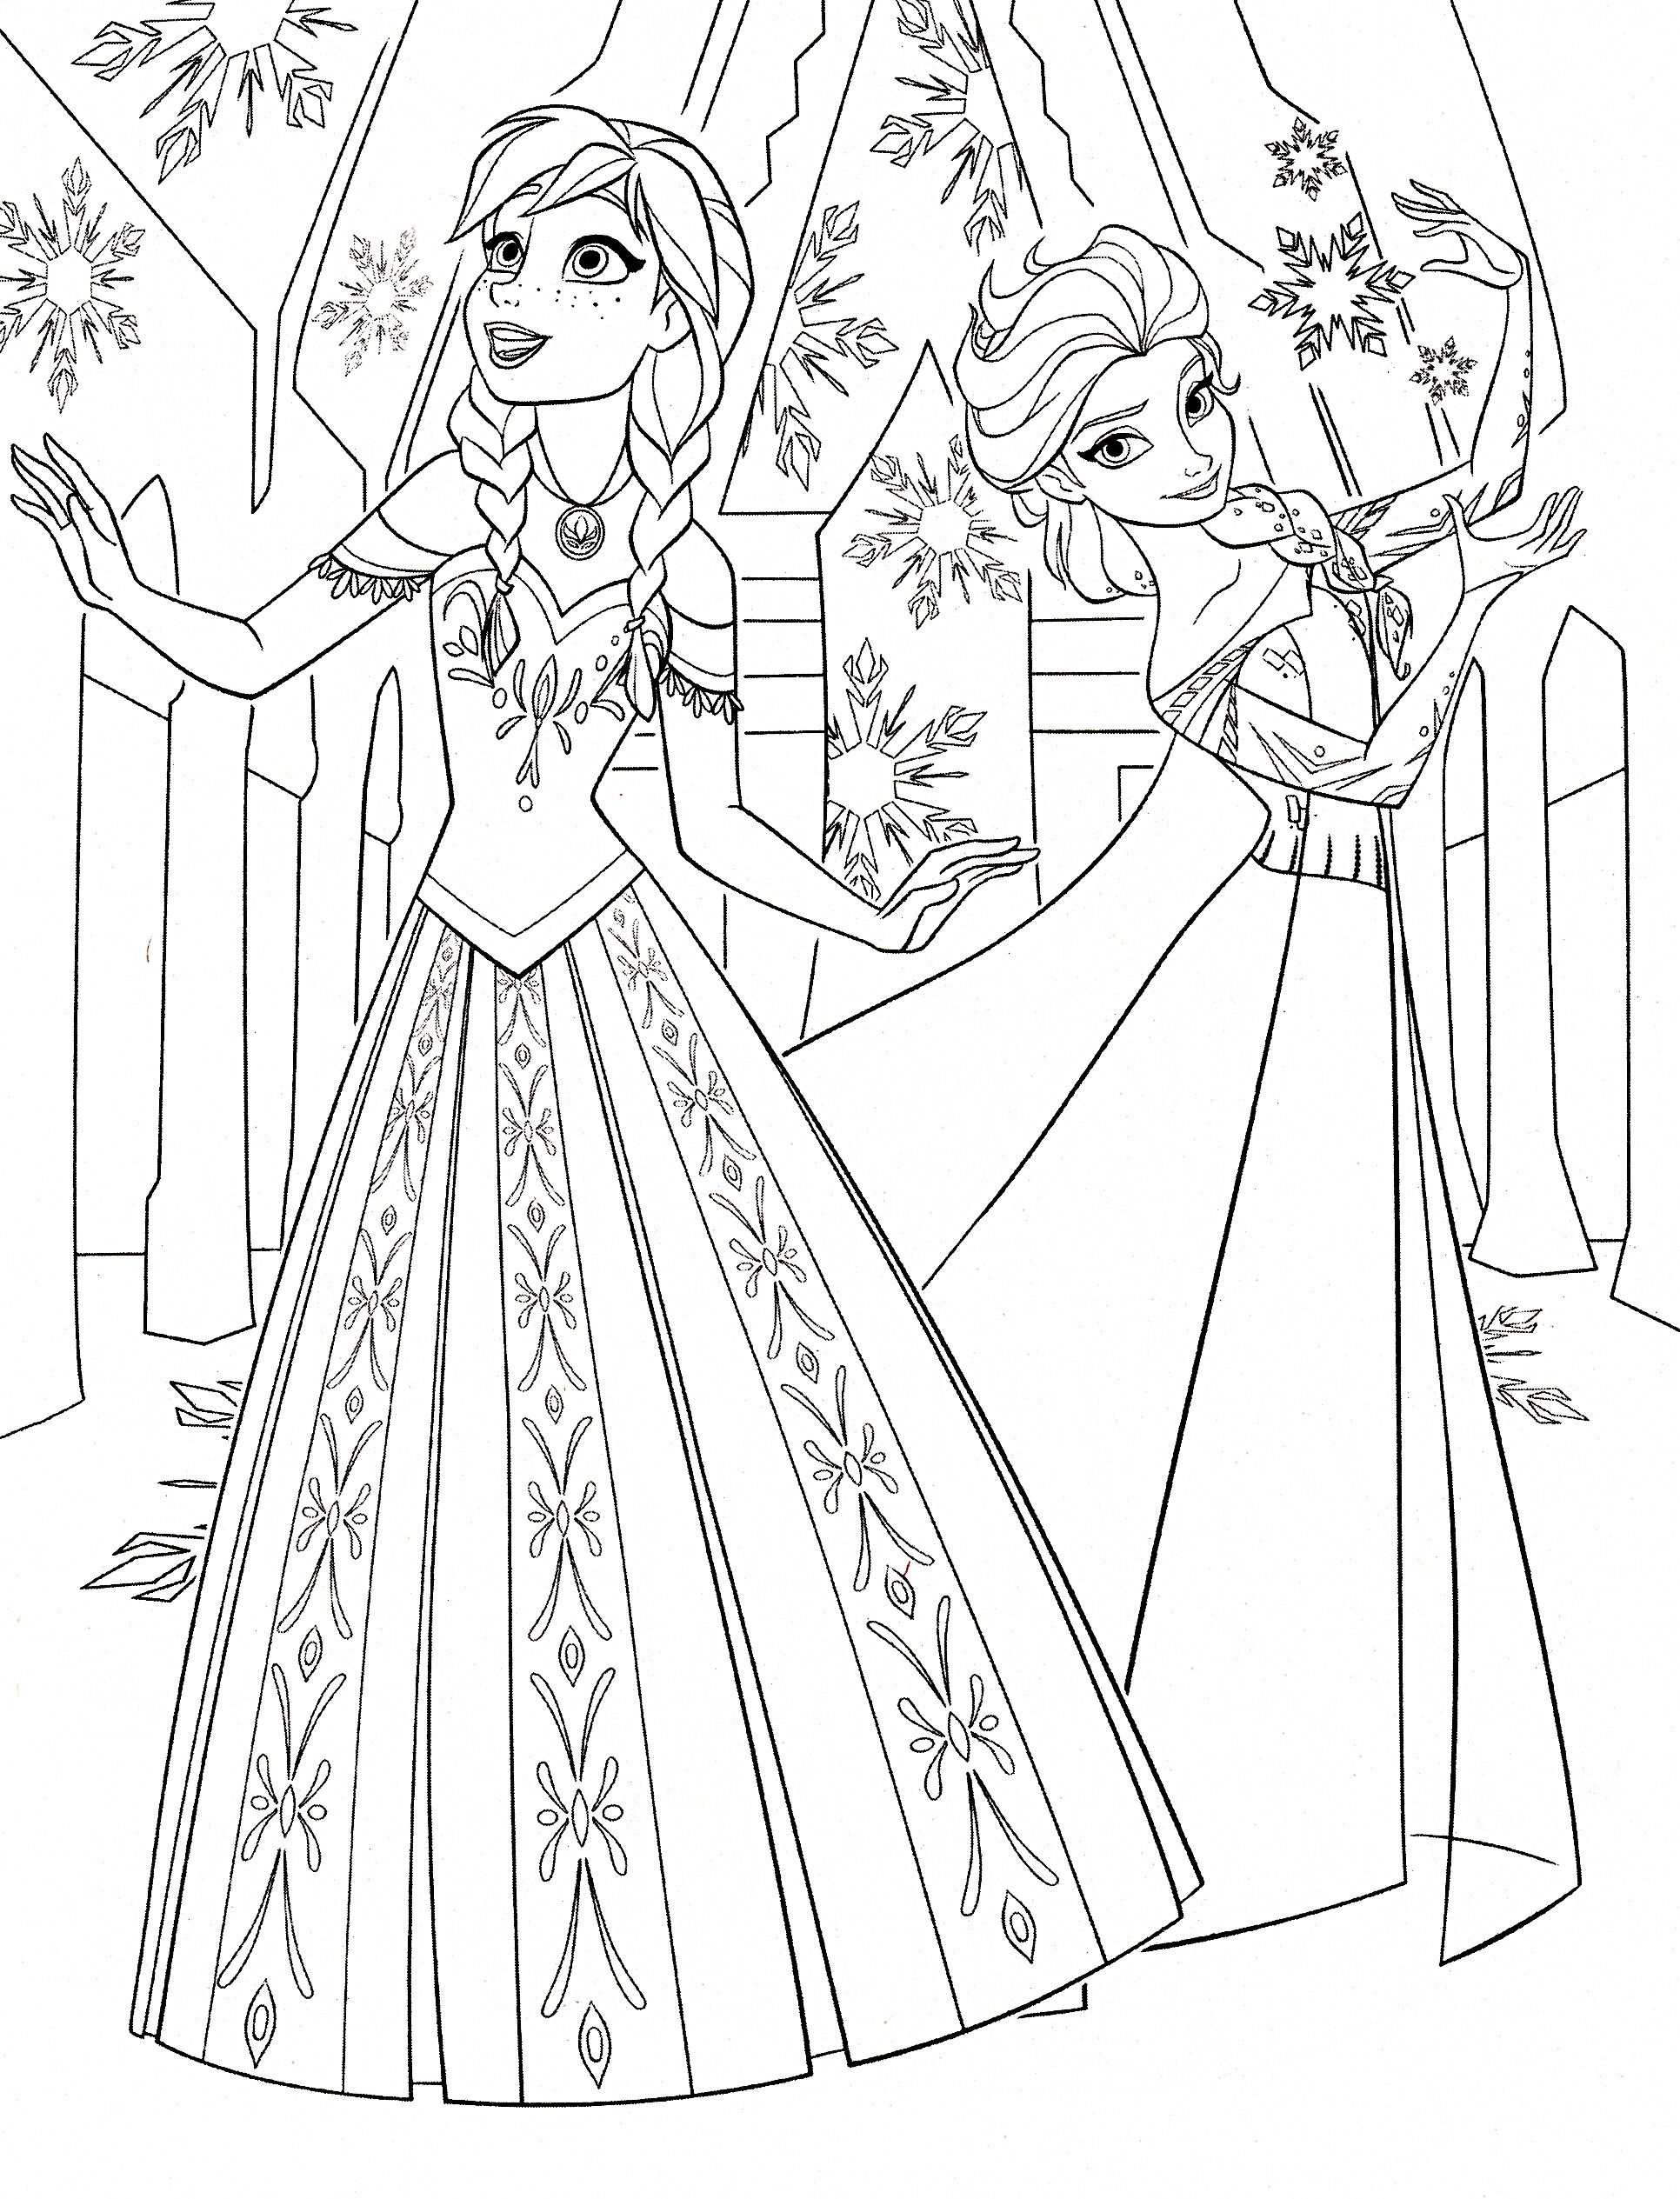 Coloring pages frozen - Color Pages Of Anna Elsa Frozen Walt Disney Princess Characters